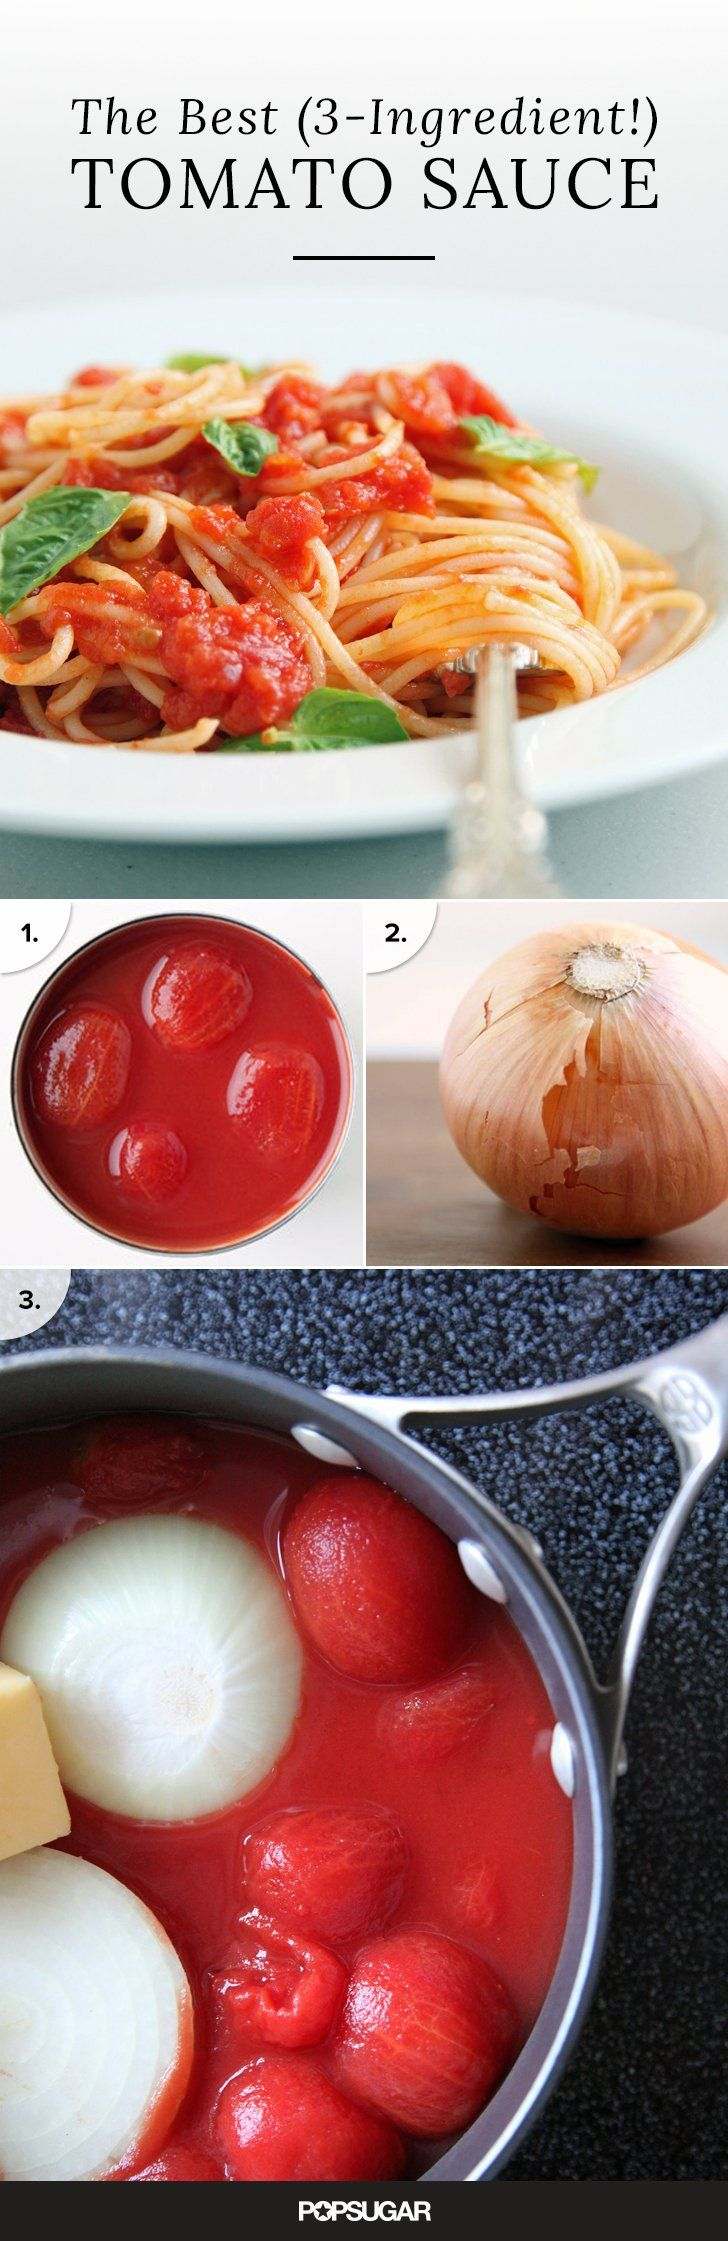 You Won't Believe How Good This 3-Ingredient Tomato Sauce Is